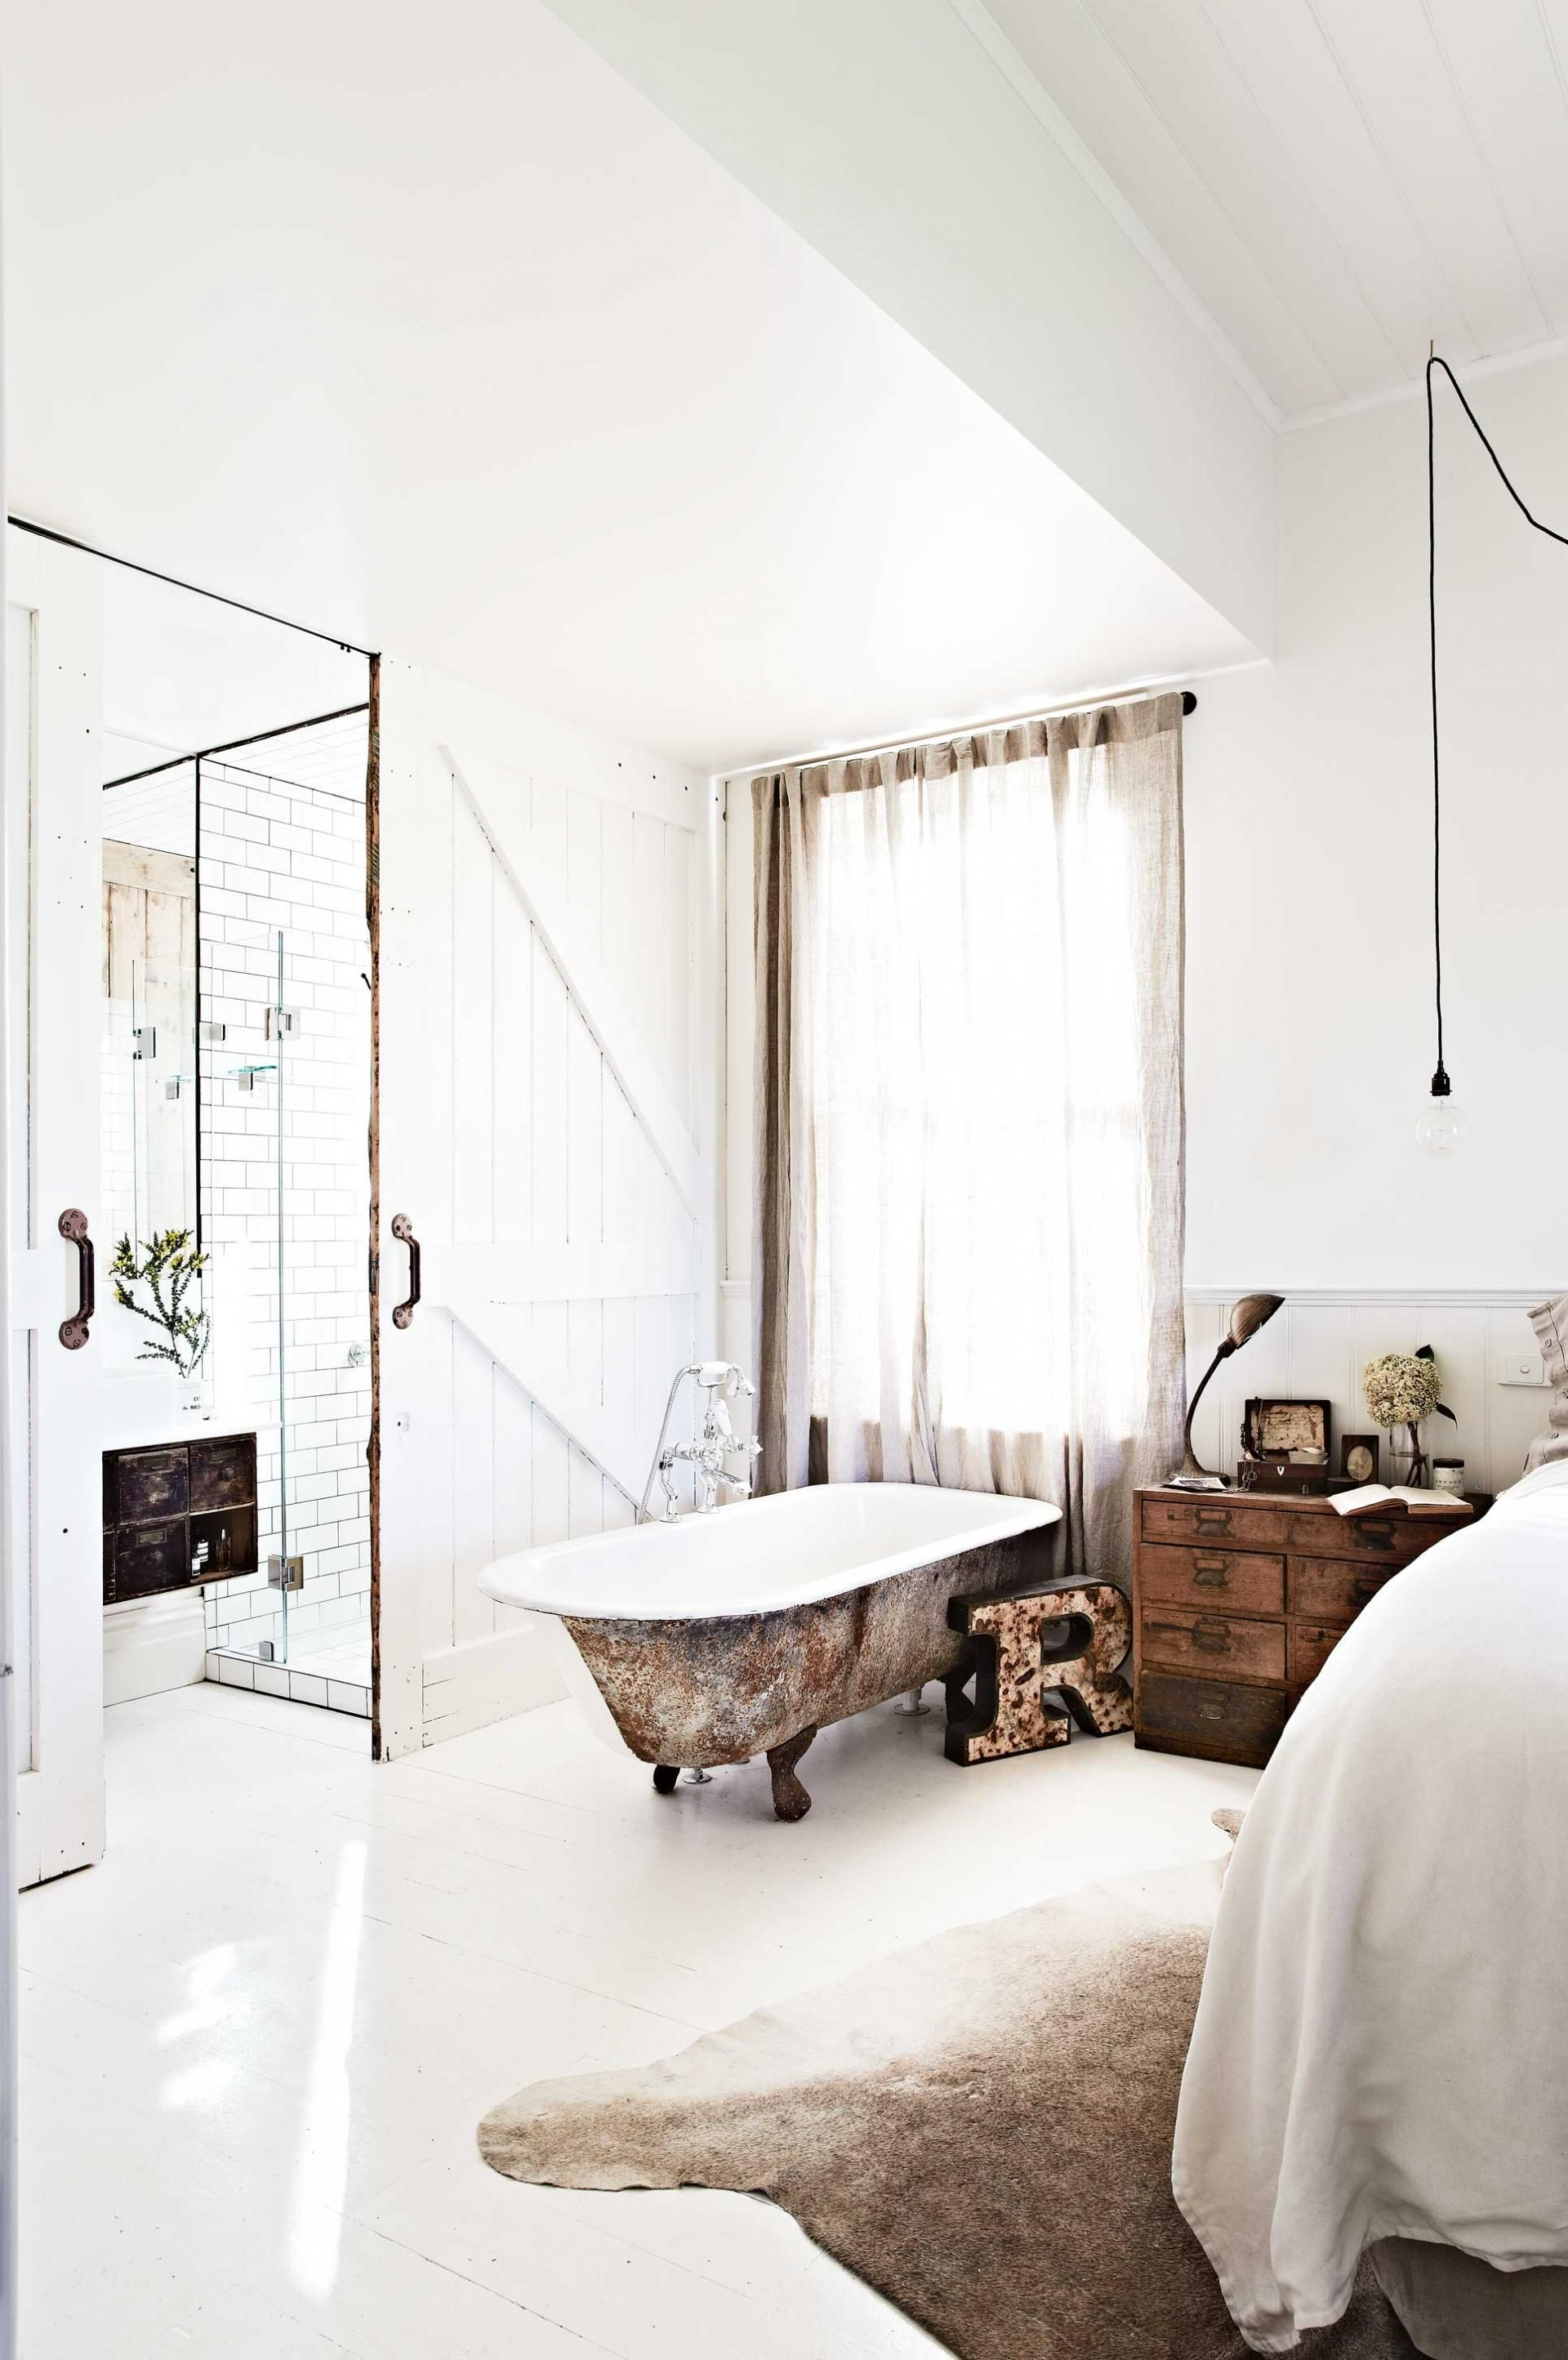 Vintage house interior design  winter holiday escapes vintage house daylesford styling by julia